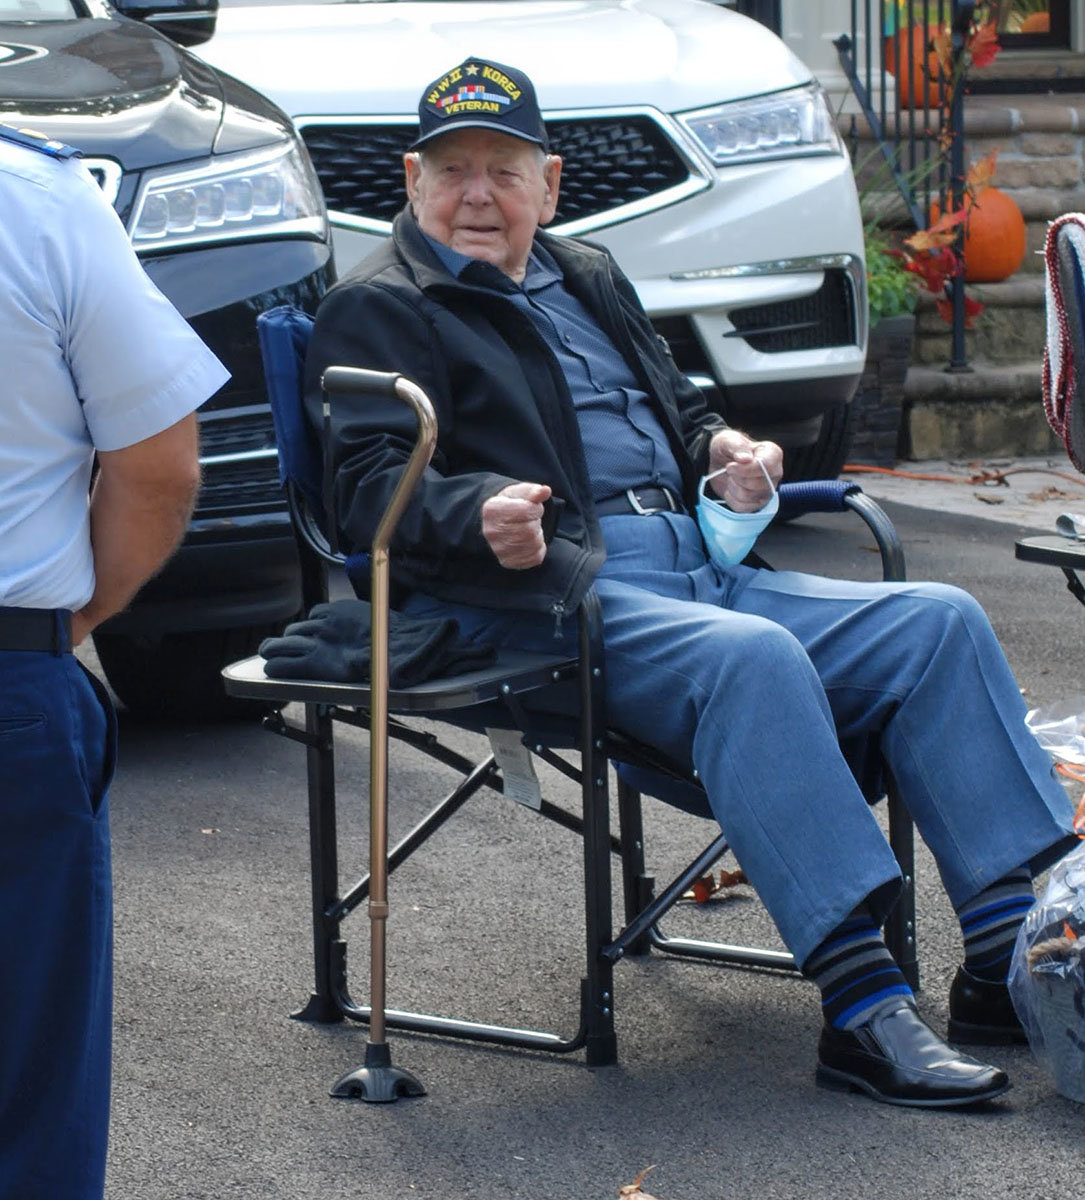 Earl Daff was greeted by several motorists on October 18 as they drove by his daughter's Severna Park home.